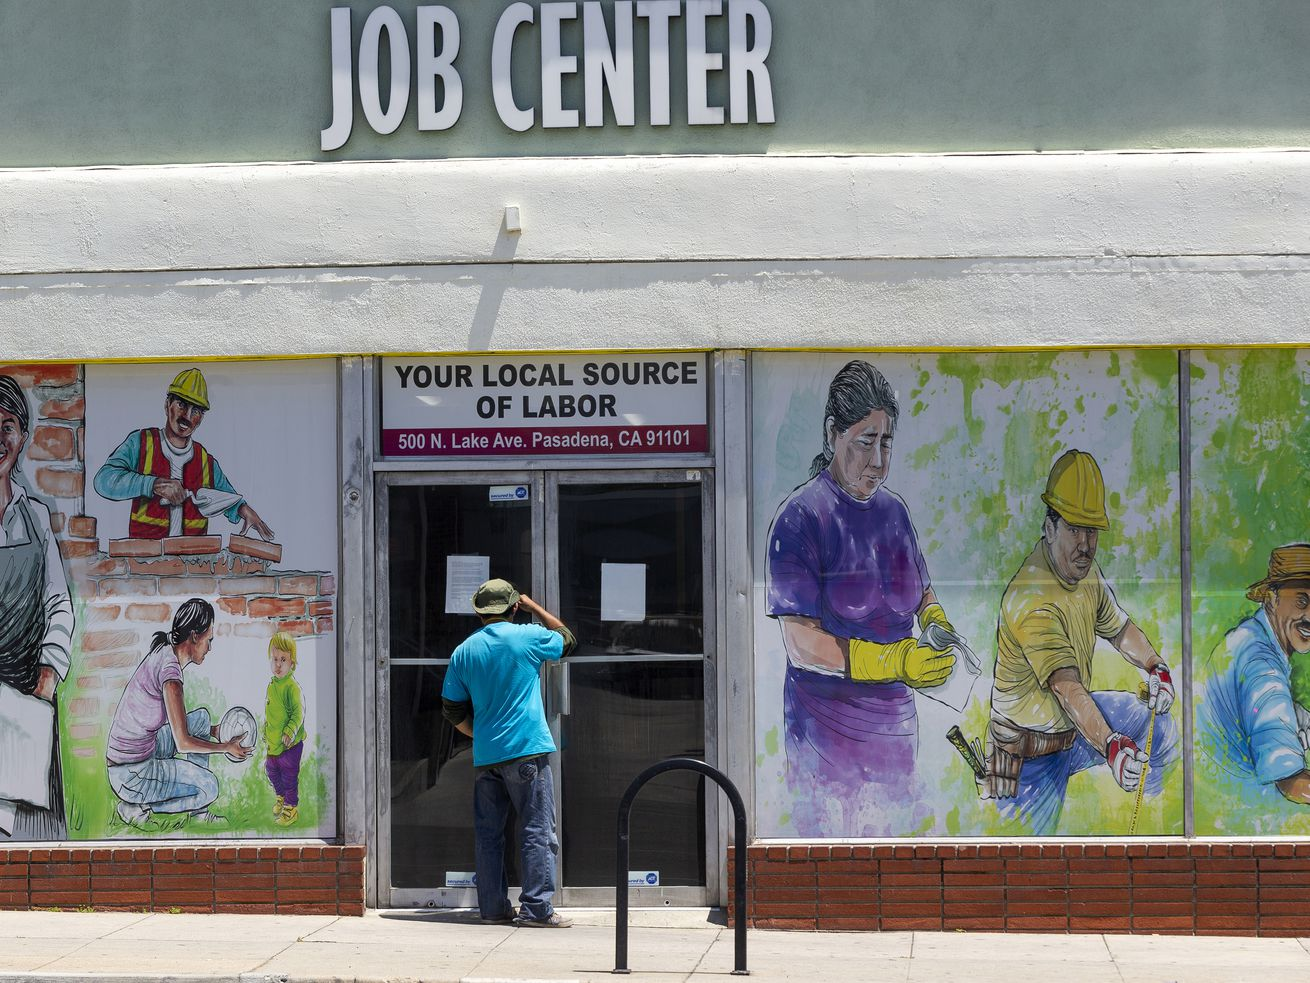 In this May 7, 2020, file photo, a person looks inside the closed doors of the Pasadena Community Job Center in Pasadena, Calif., during the coronavirus outbreak.